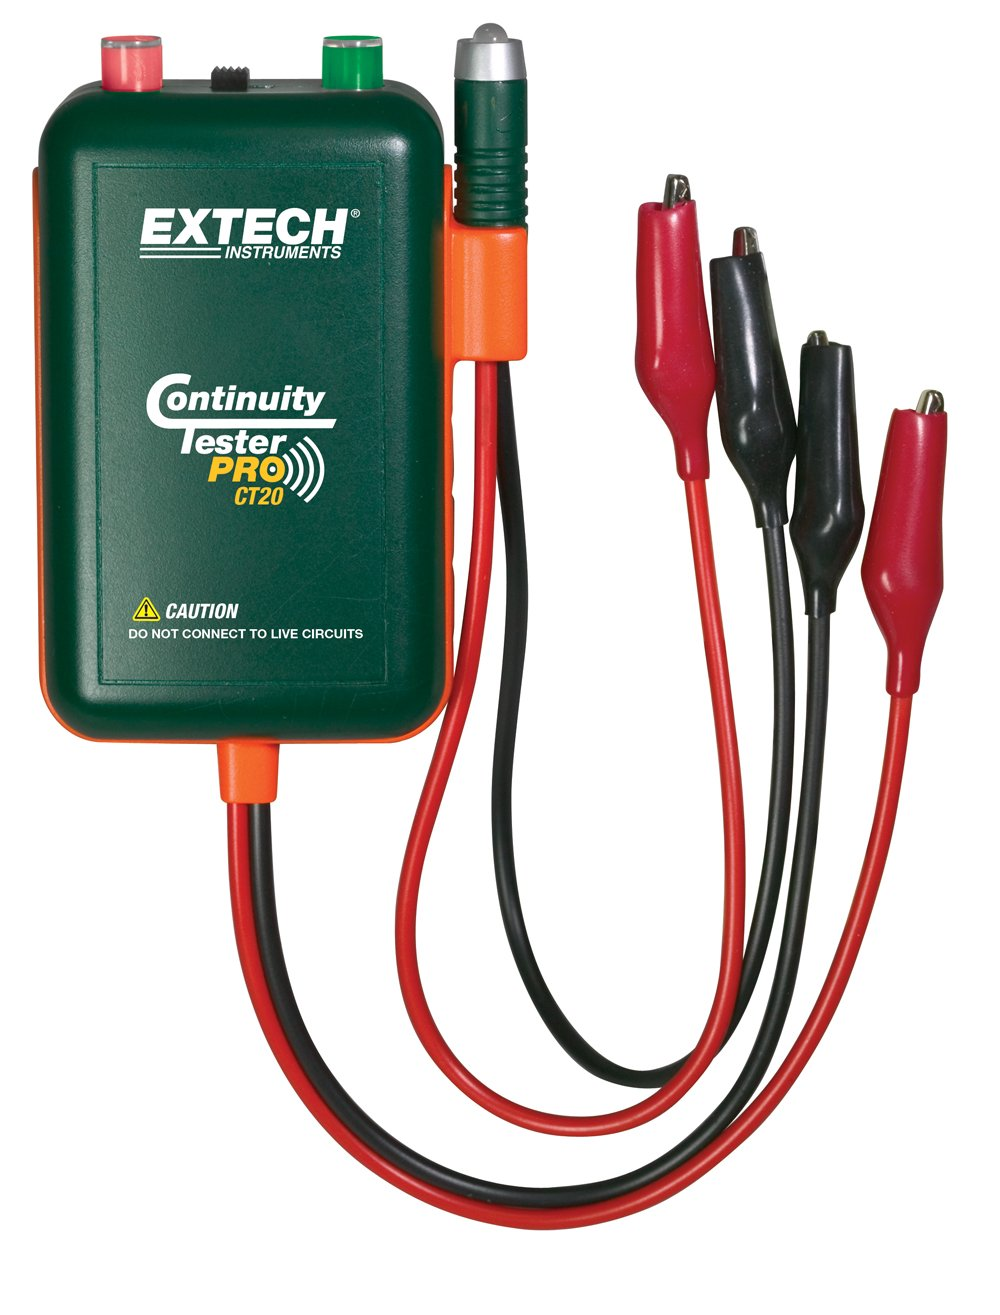 Extech Wiring Diagrams Electronicswiring Diagram Ct70 Ct 70 Ac Circuit Load Tester Electrical Outlet Gfci Ct20 Remote And Local Continuity Testers Amazoncom